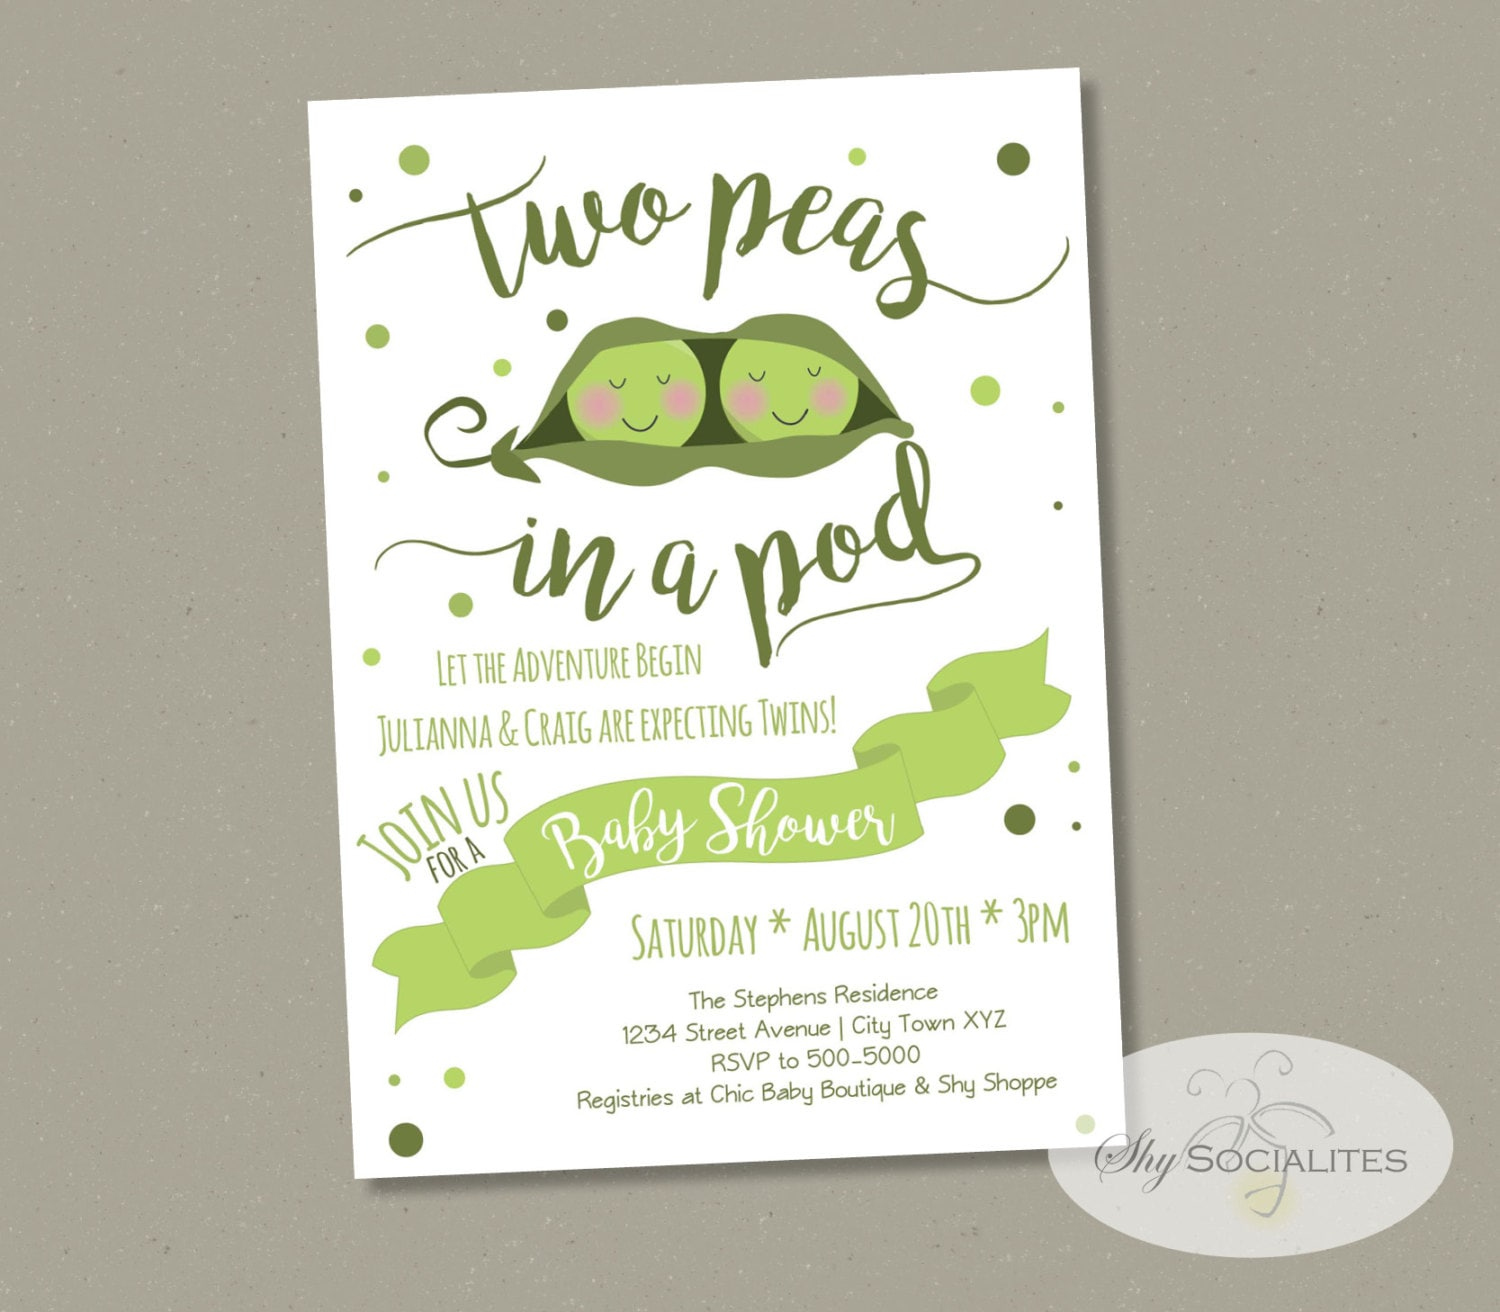 Two Peas in a Pod Baby Shower Invitation Twins Baby Shower